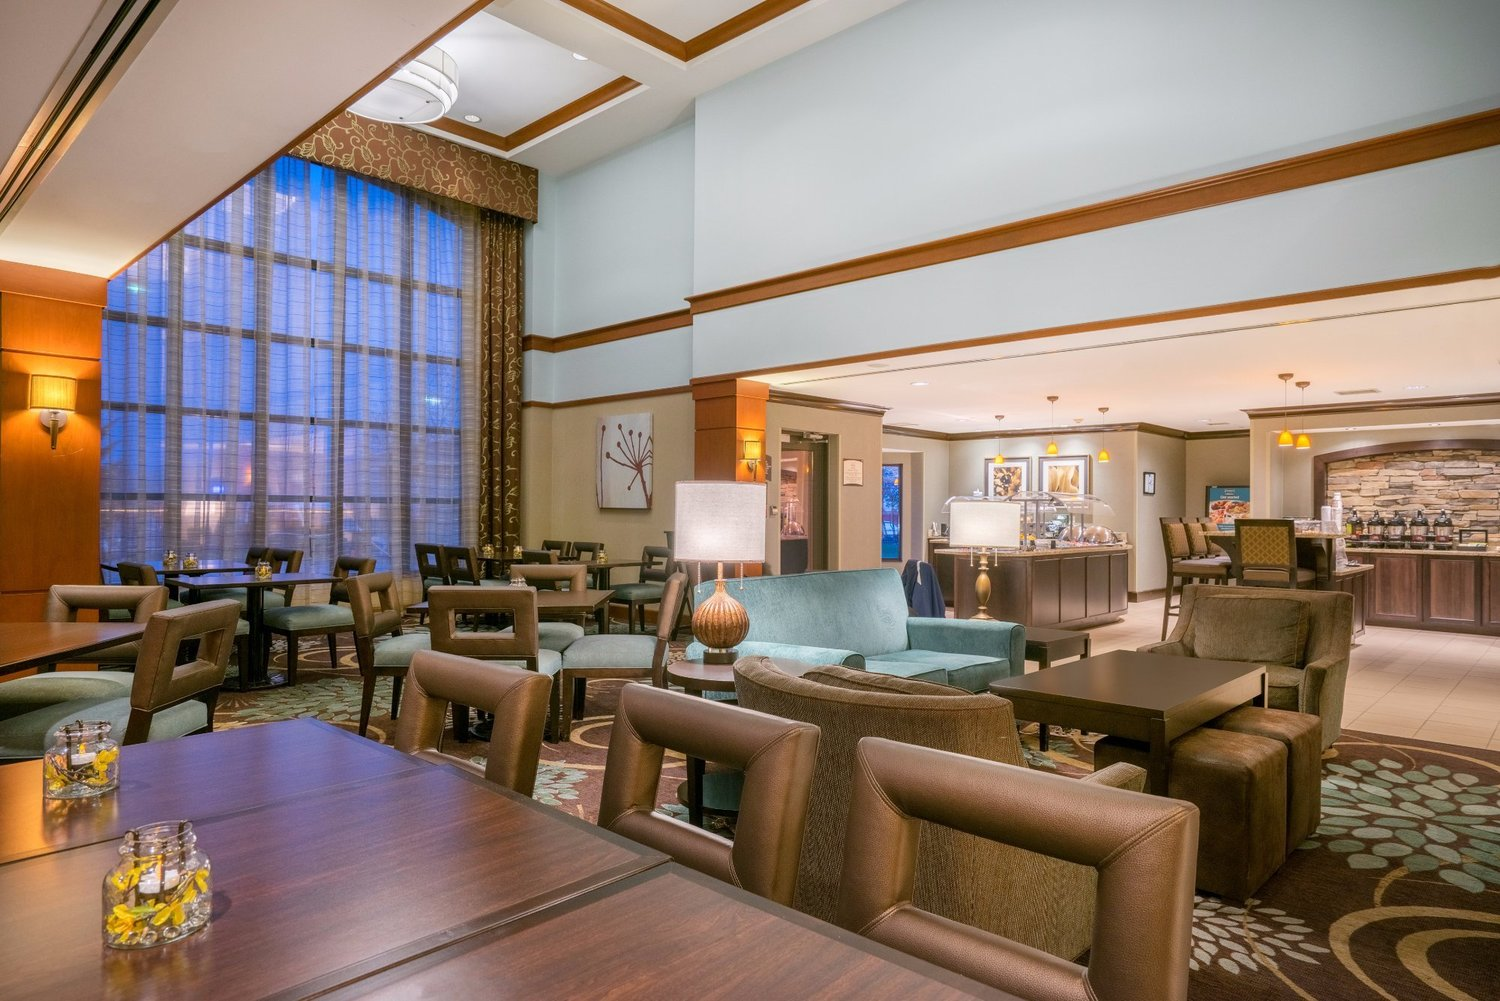 Staybridge Suites Wilmington Brandywine Valley, Glen Mills